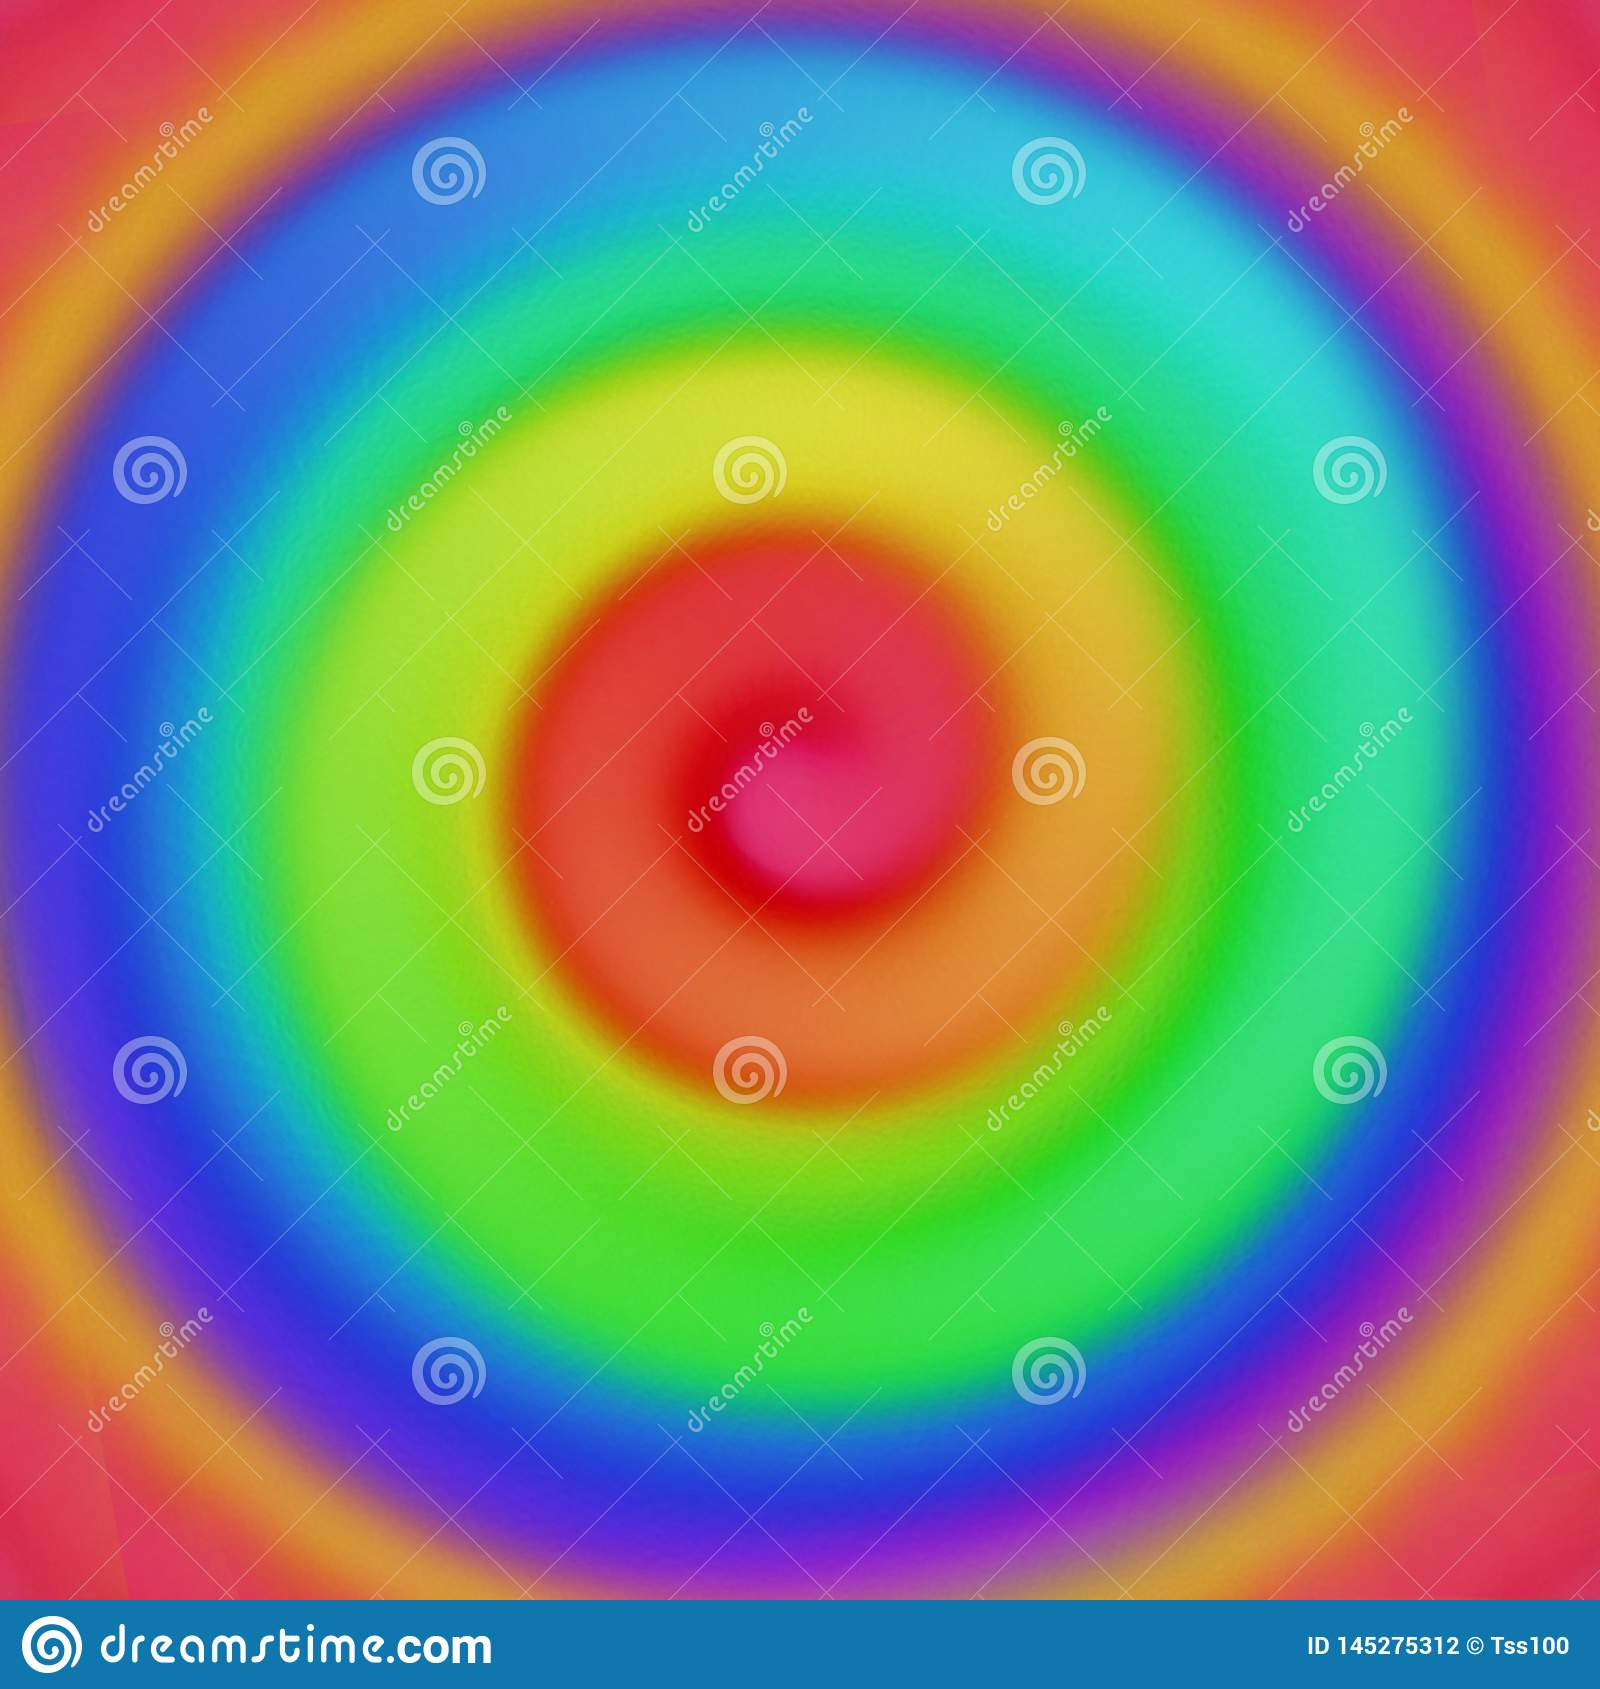 Multicolored abstract hand drawn background